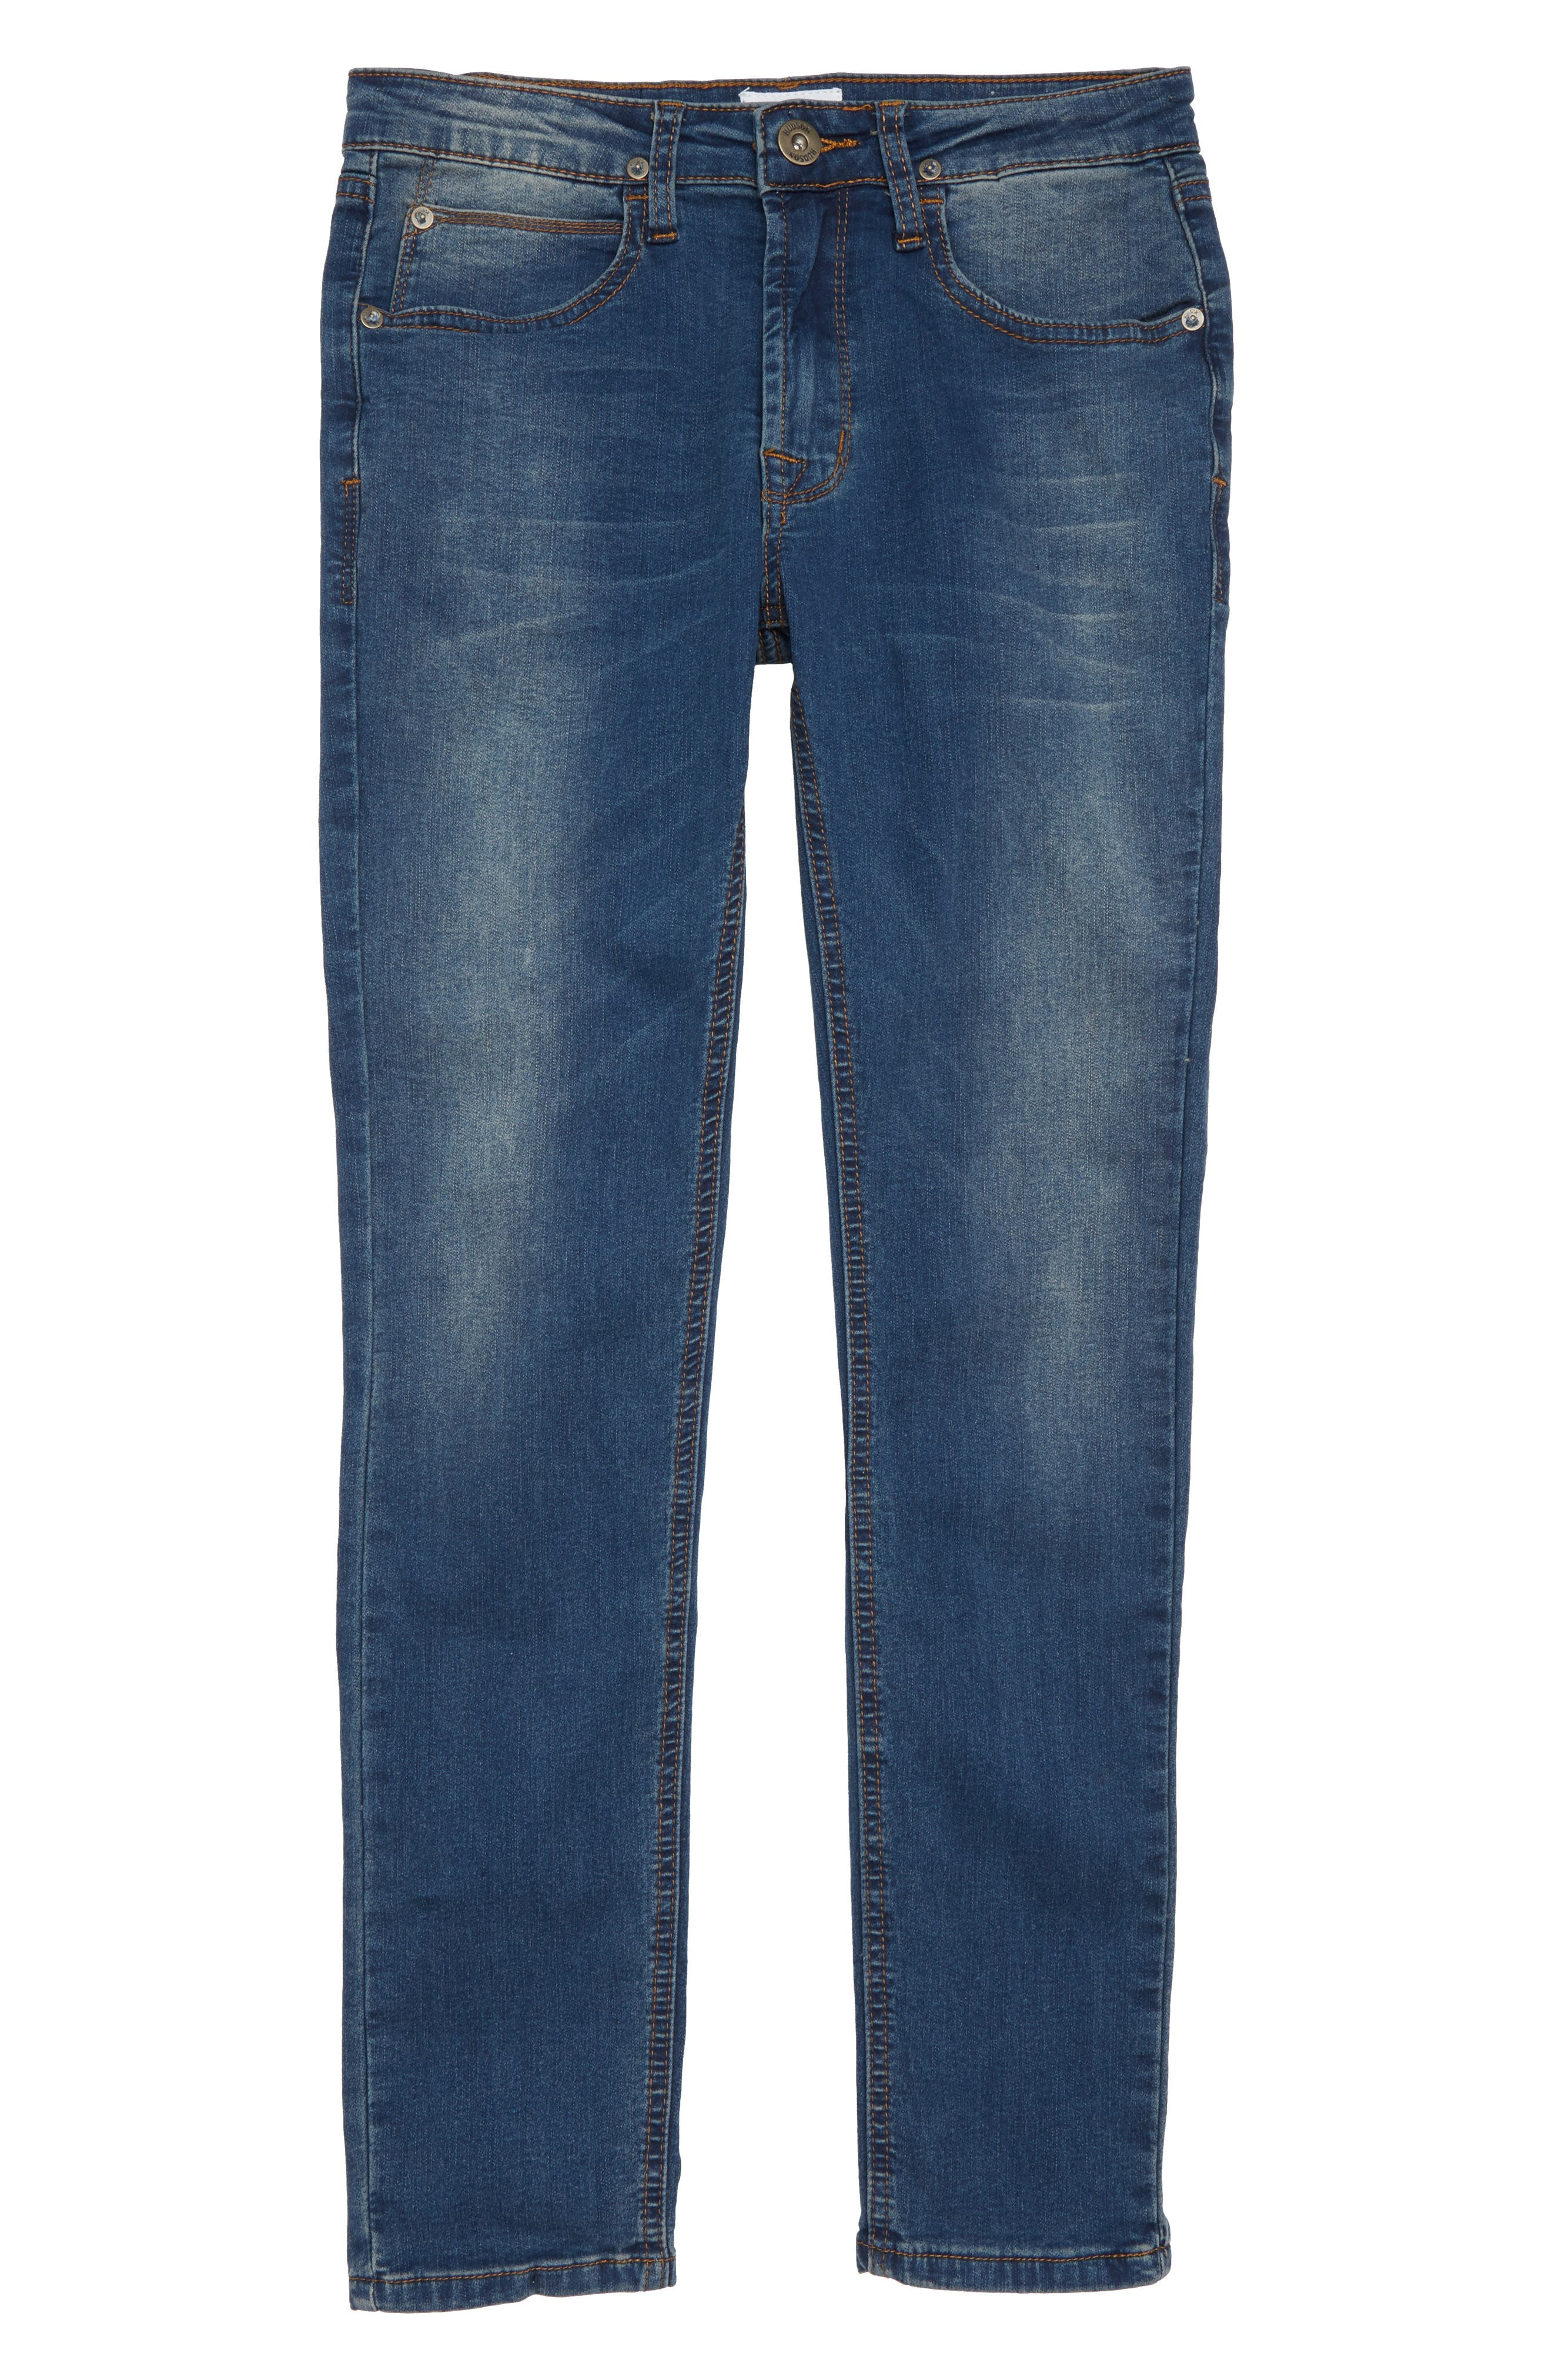 Jagger Slim Fit Straight Leg Jeans,                         Main,                         color, Beaten Blue